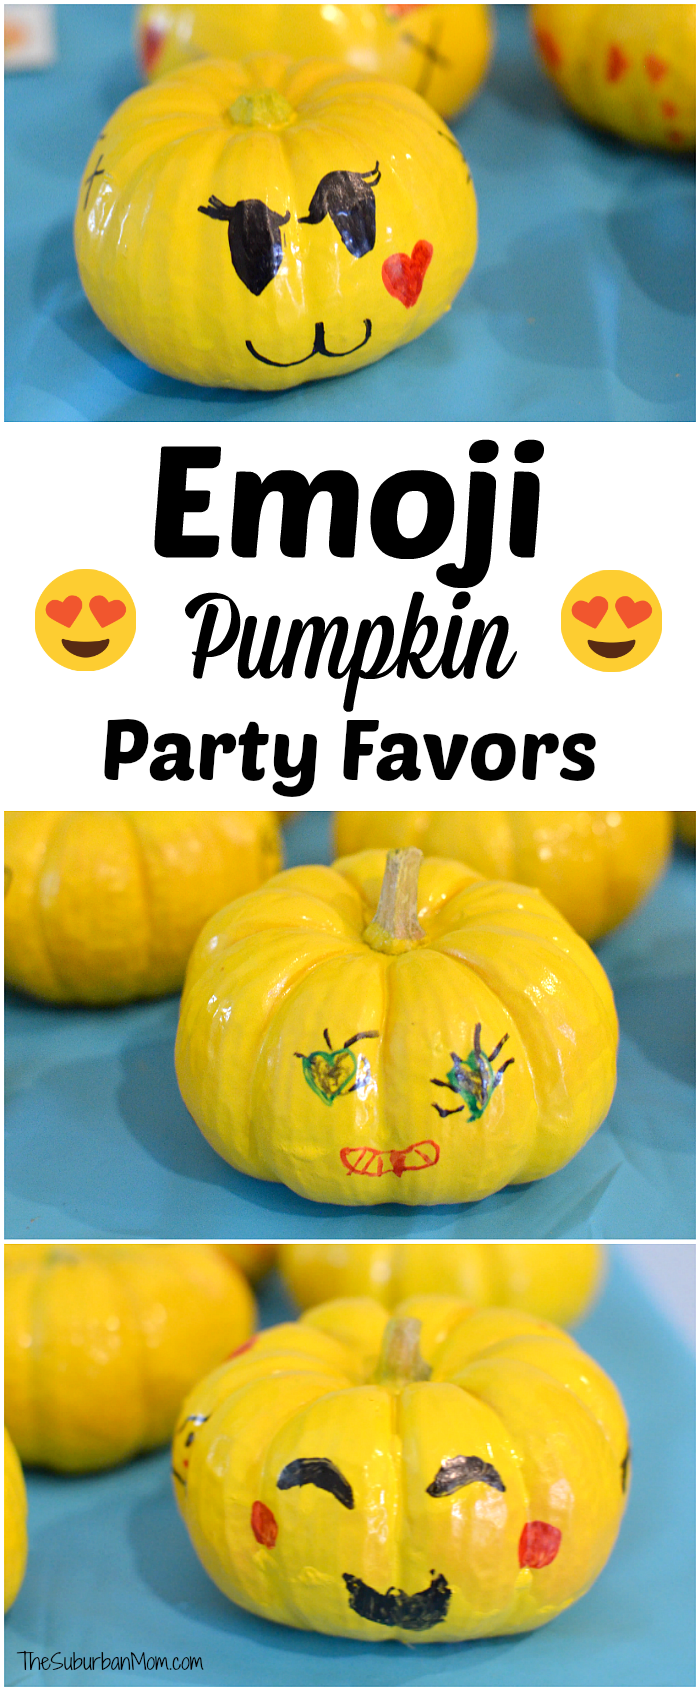 Emoji Pumpkin Party Favors